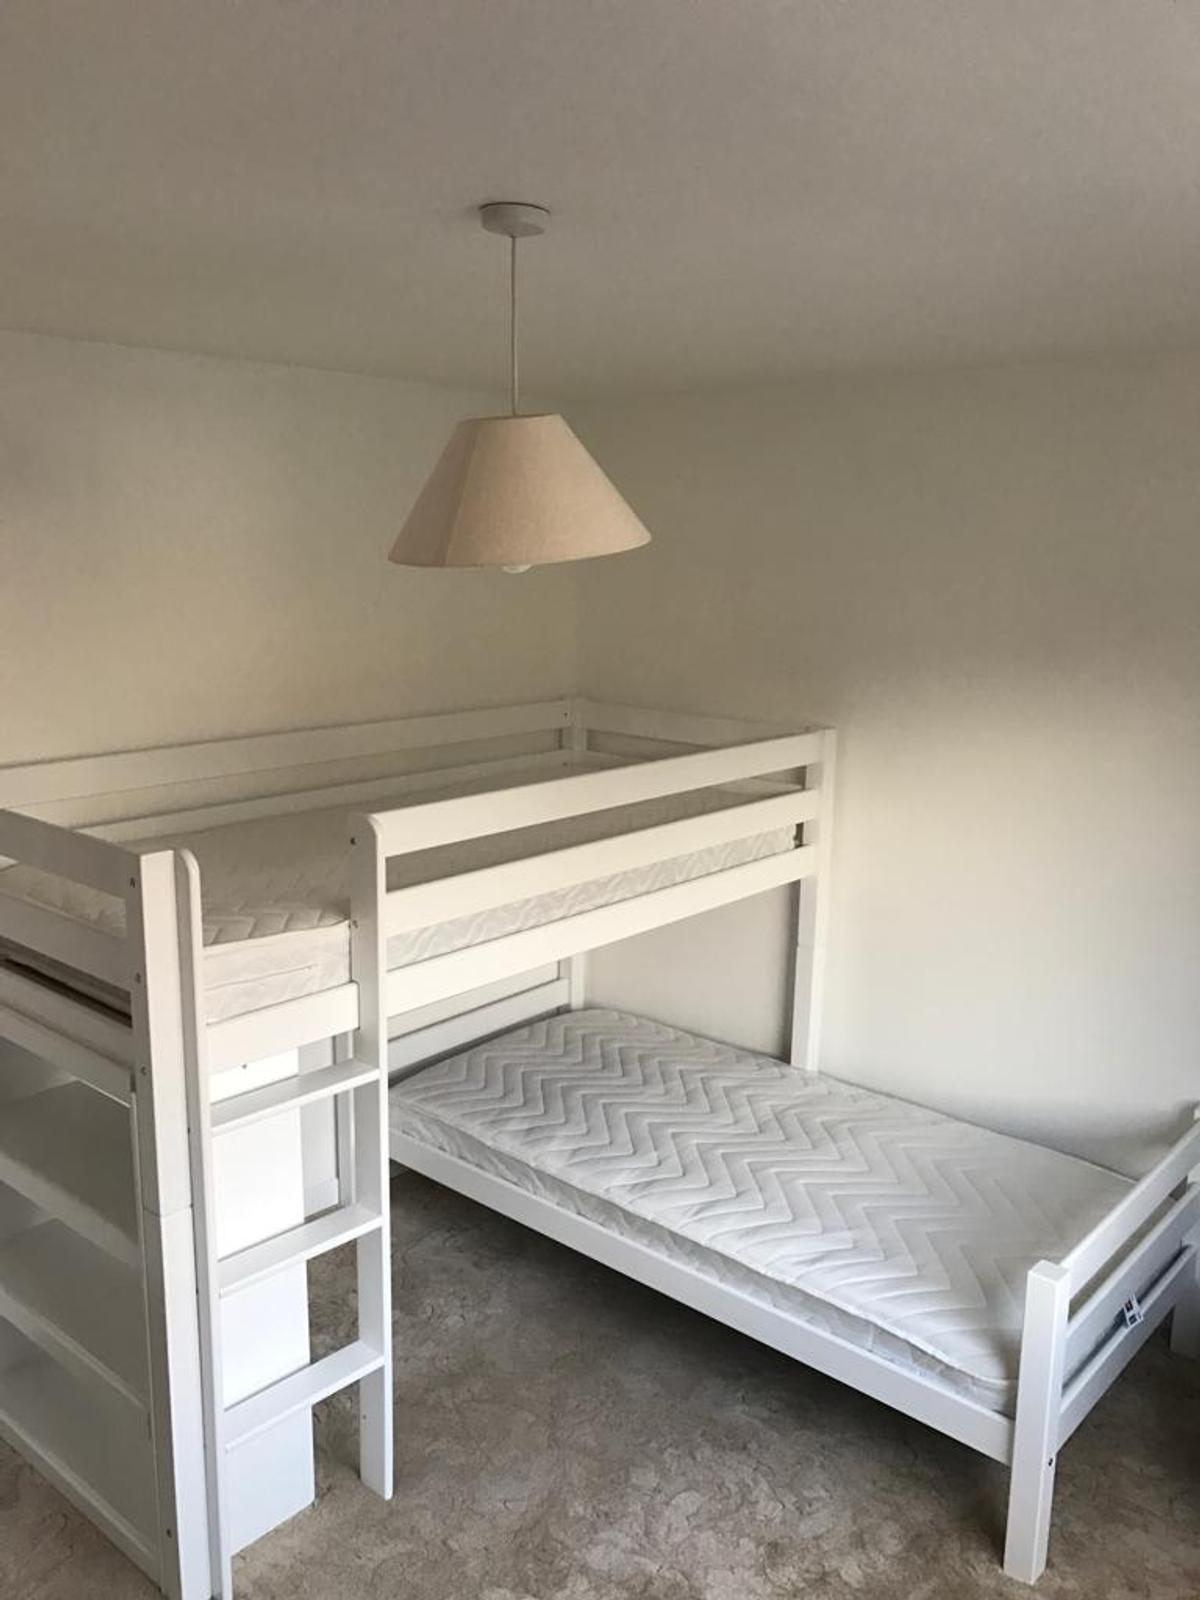 L Shaped Bunk Bed White With Bookshelf